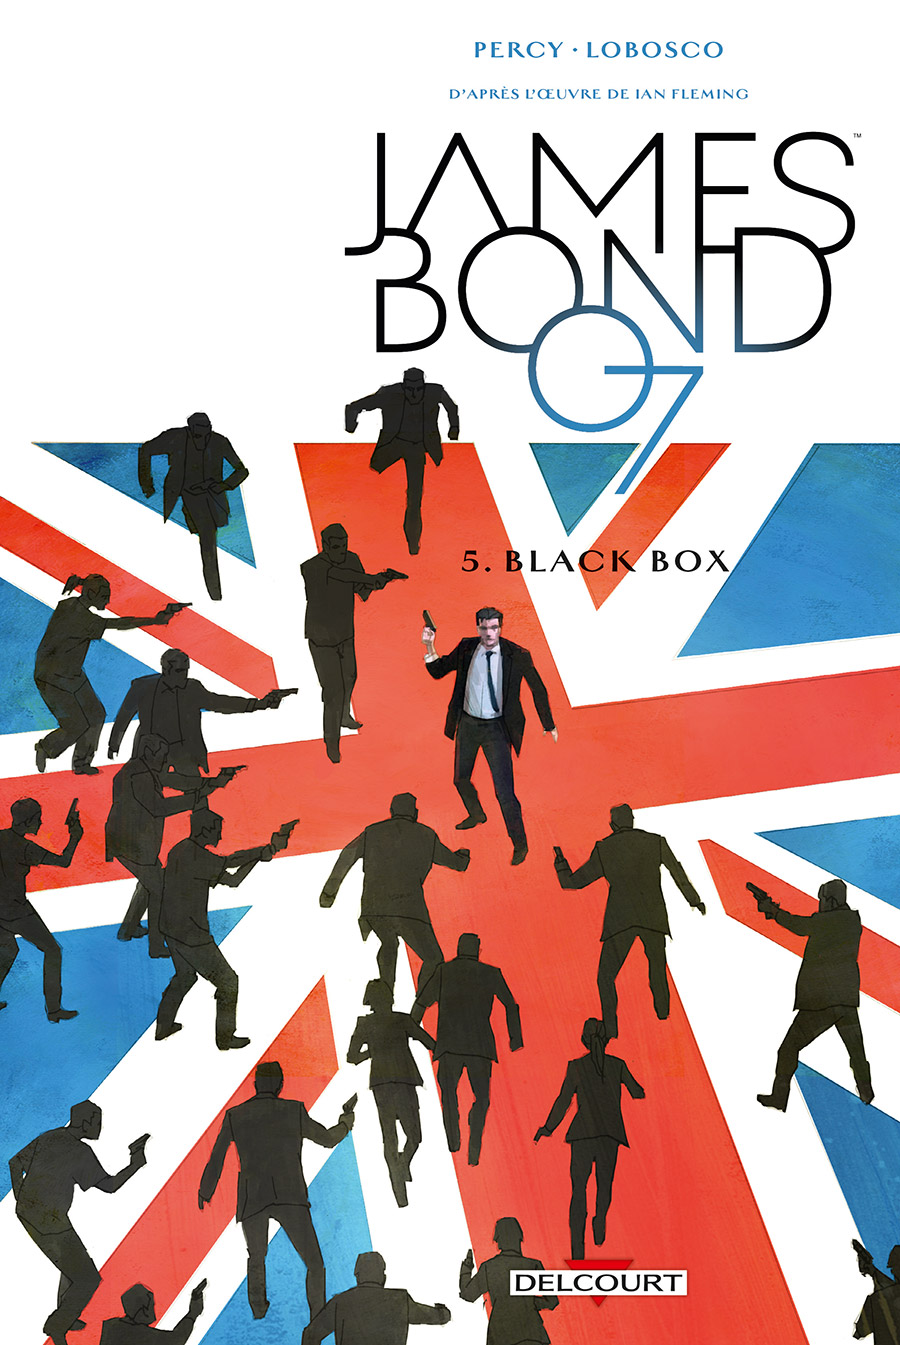 James Bond T5 : Black box (0), comics chez Delcourt de Percy, Lobosco, Bowland, Reardon